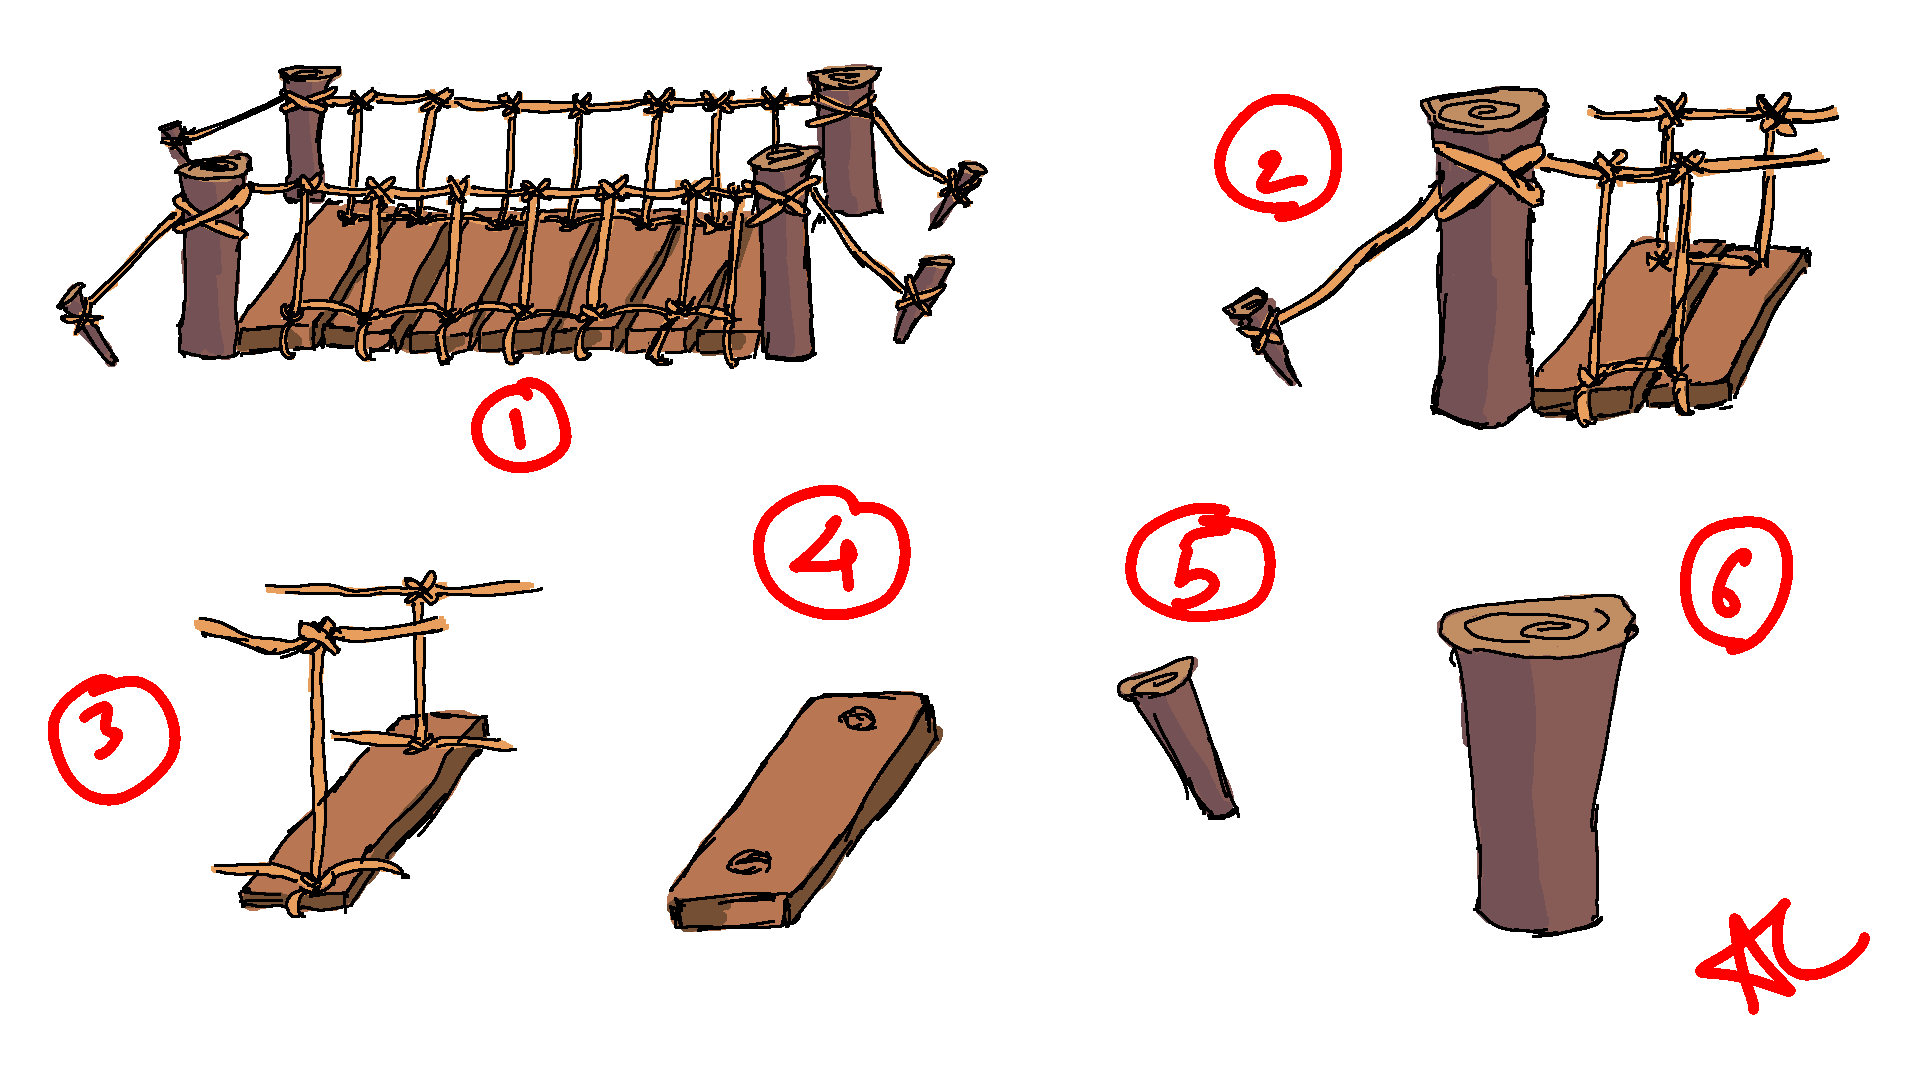 003_WoodenBridgeWithComponents.png